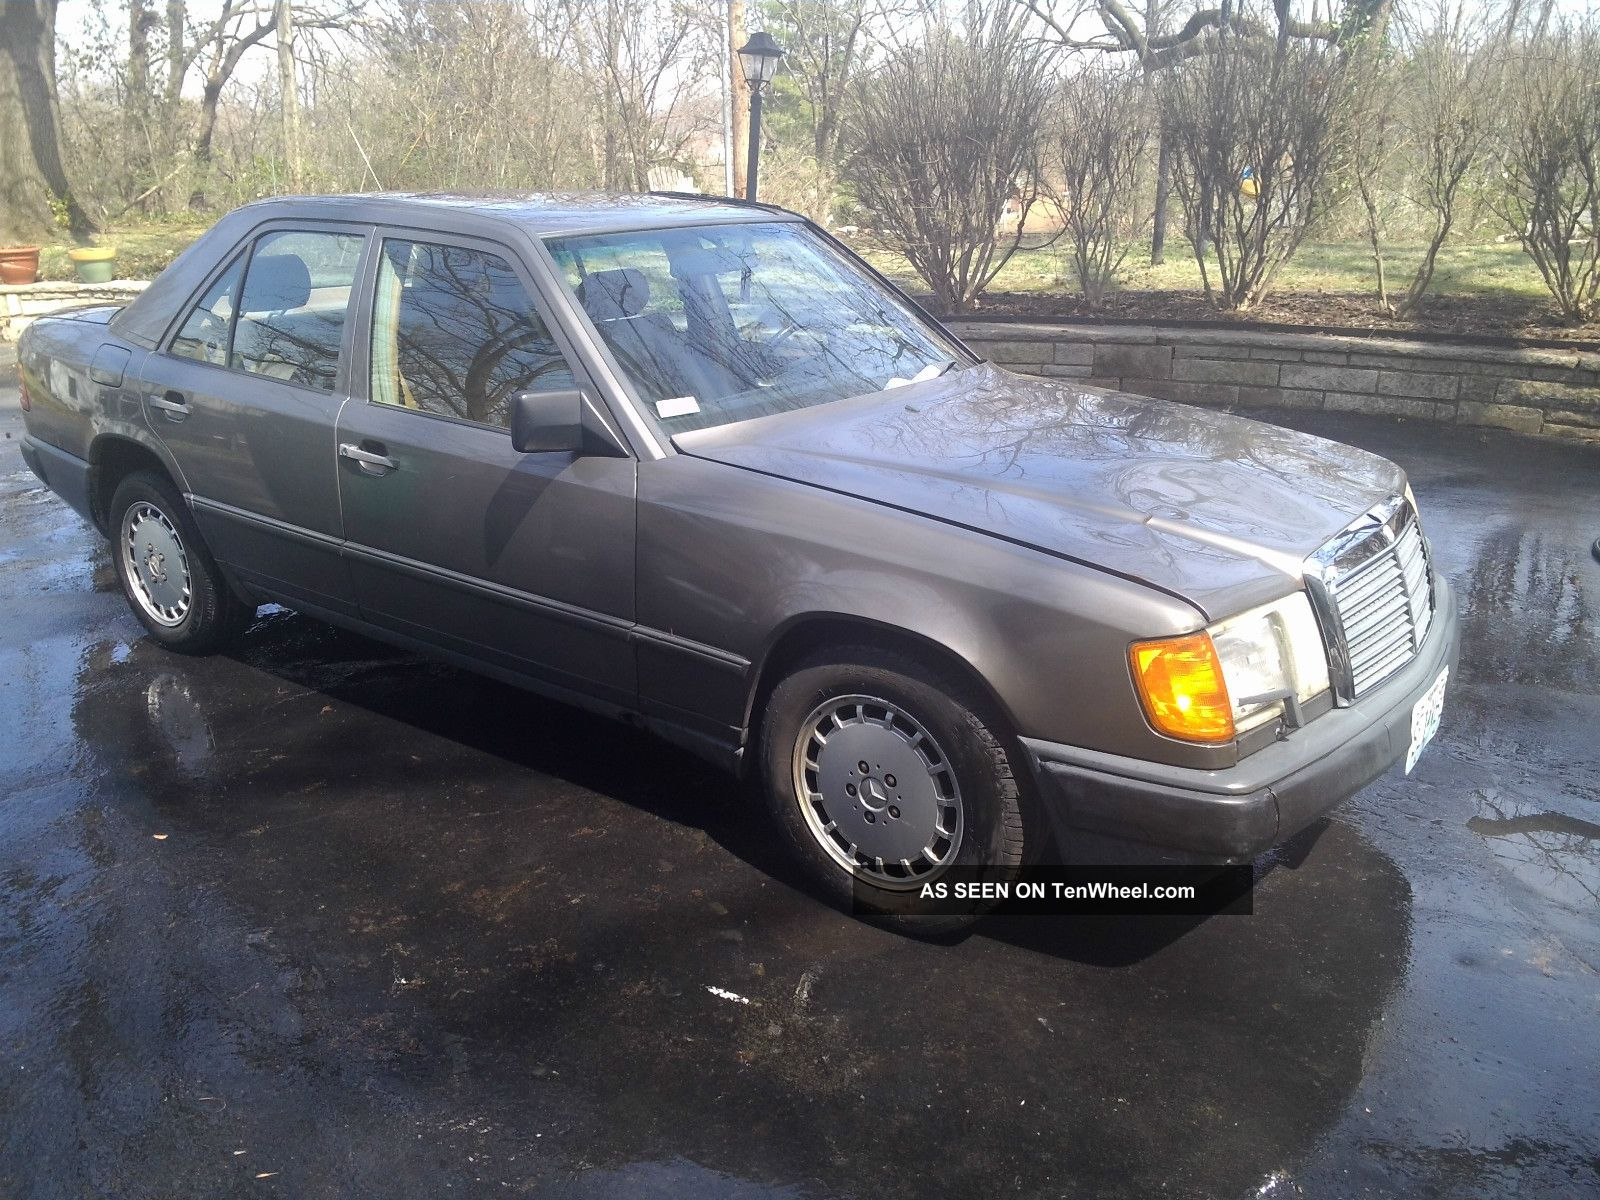 1989 Mercedes 300e Diagram further 400937 Ke Jetronic Diagnosis in addition 308791 380sl Diesel Conversion Project 12 furthermore 185572 1985 Federal 300d Tachometer Repair together with 160713337337. on ovp wiring diagram